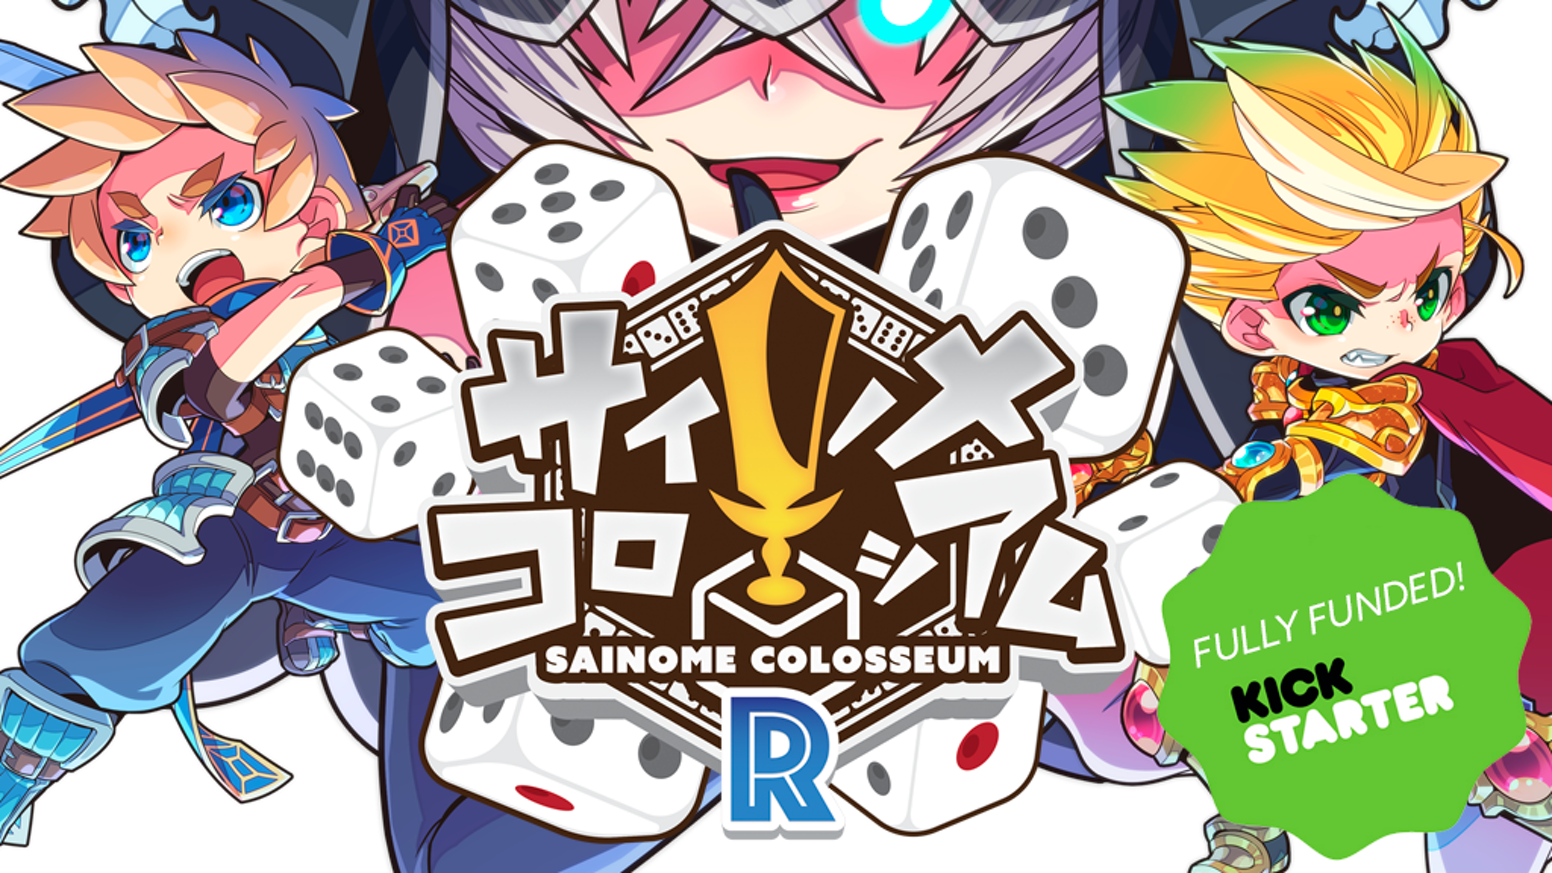 An exciting and ultra-accessible anime-themed tabletop combat game for 2-4 players, brought to you directly from Japan!